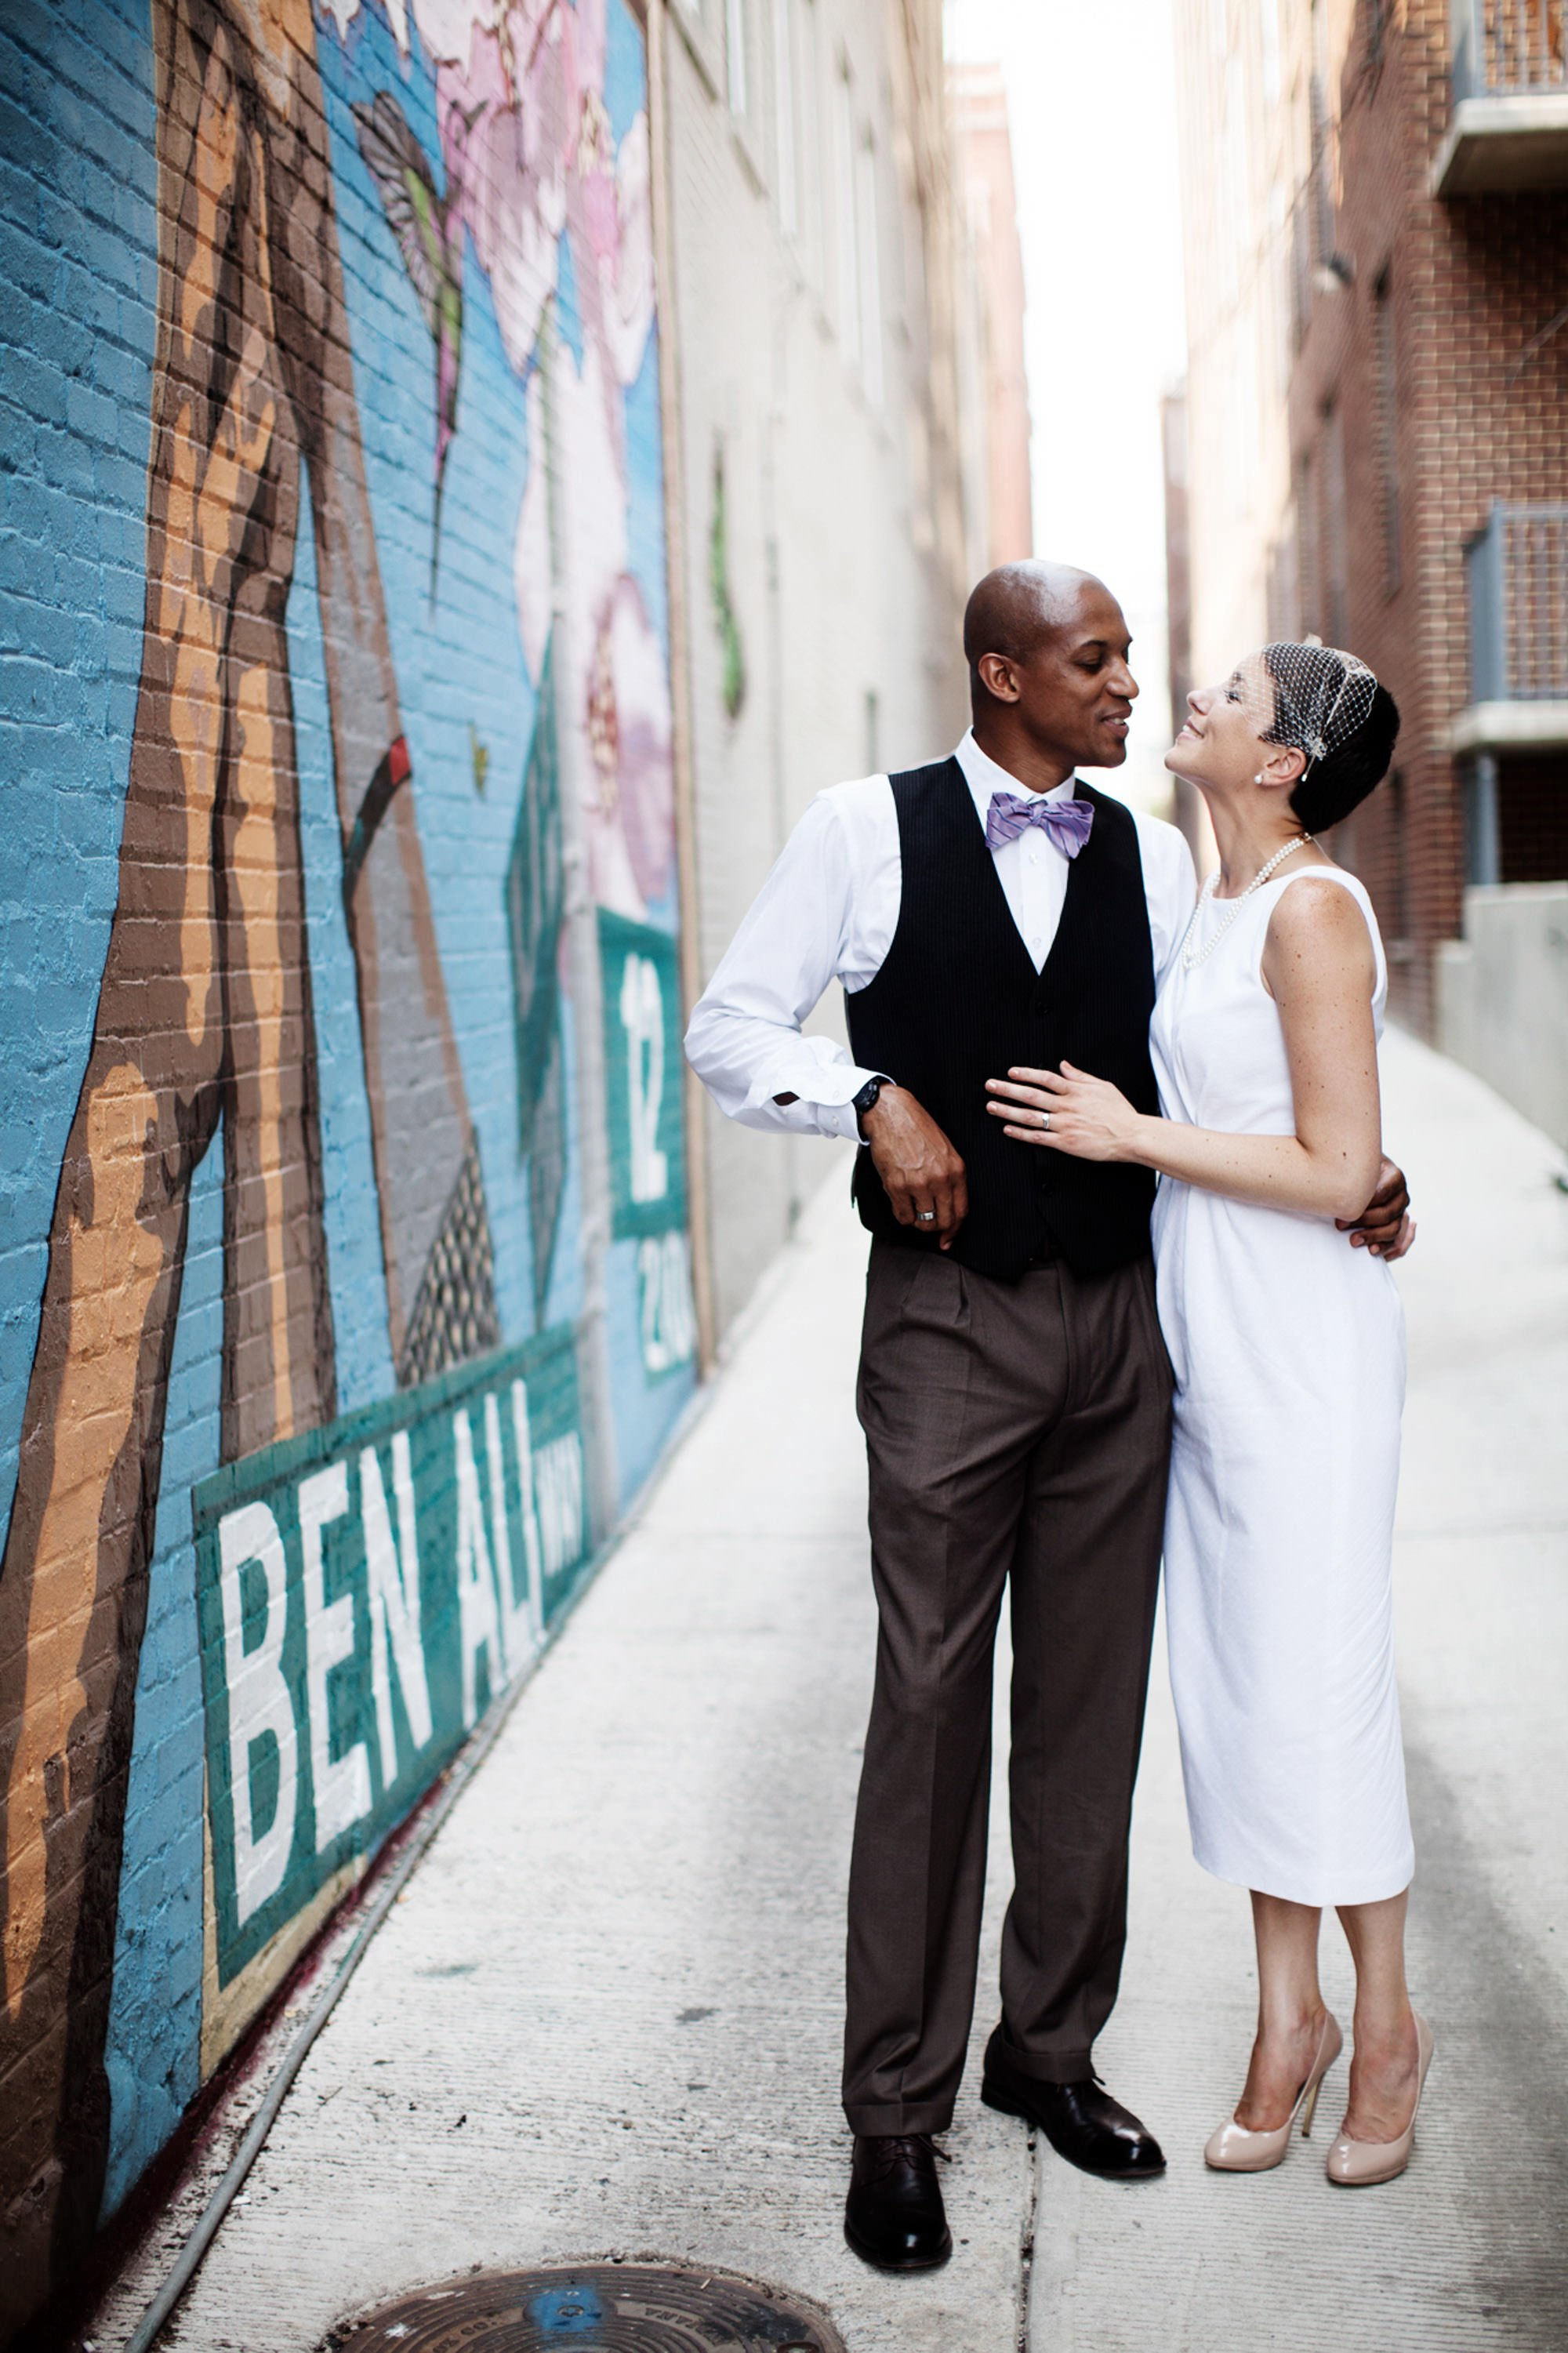 Ben's Chili Bowl wedding  I  The bride and groom pose by a mural in an alley just outside the iconic restaurant in Washington, DC.